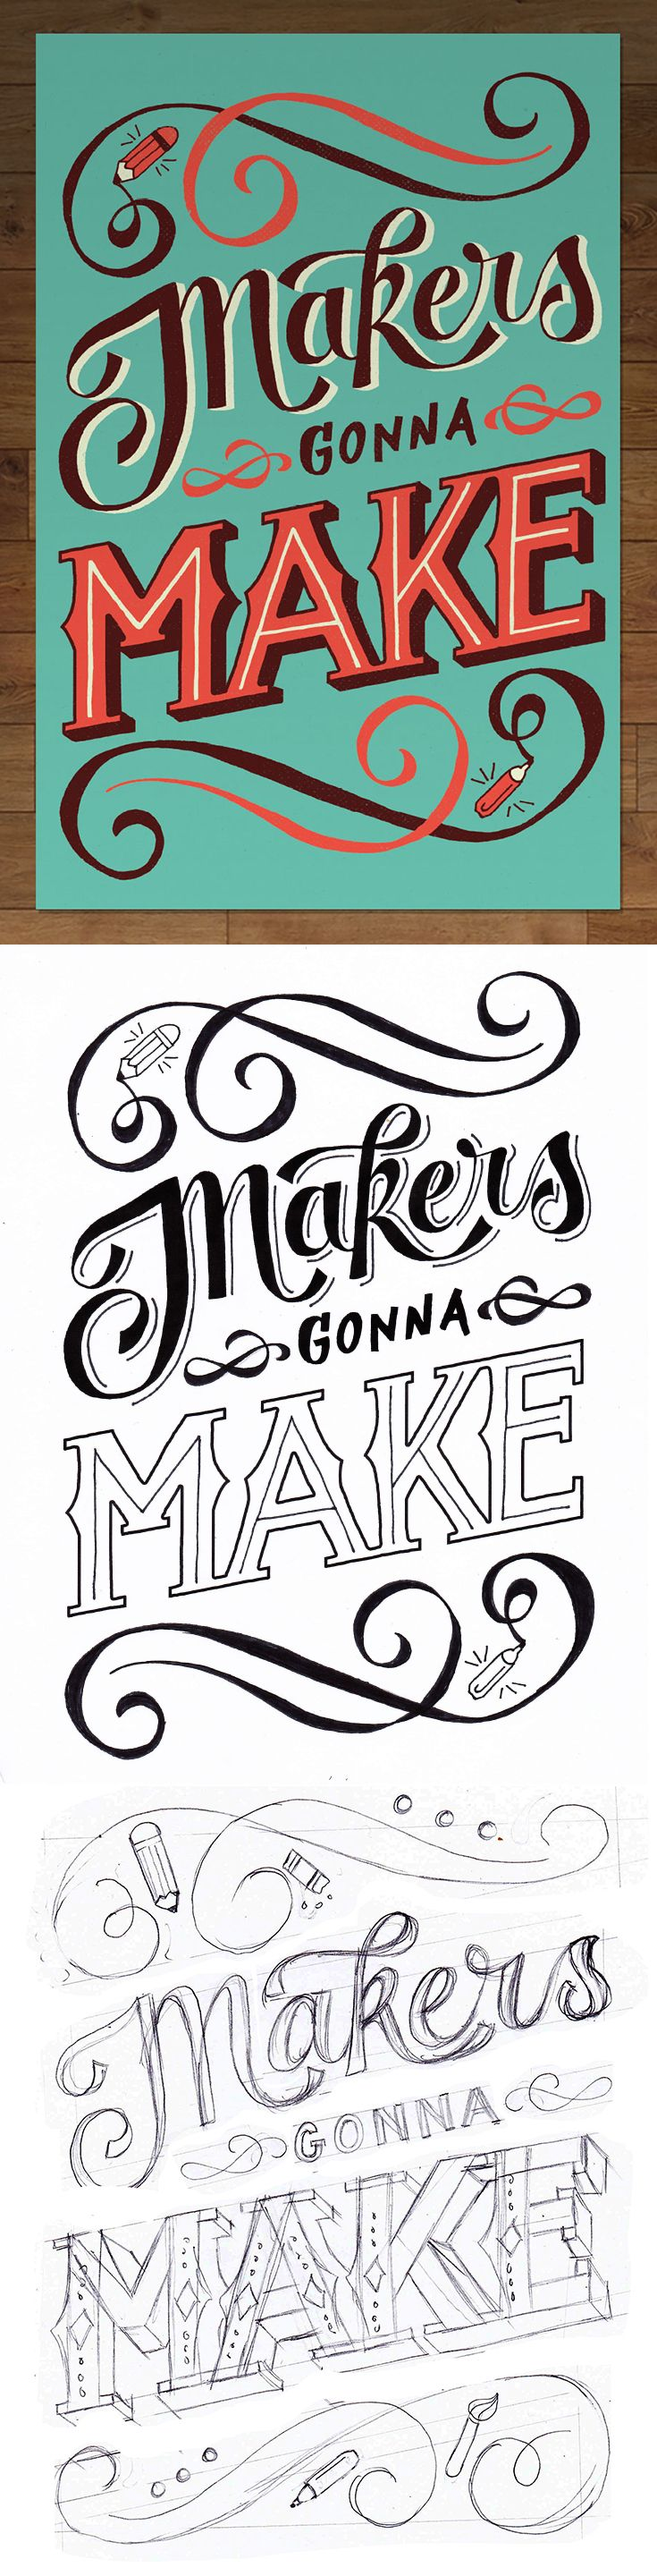 """My process for creating the hand lettered poster """"Makers Gonna Make""""."""